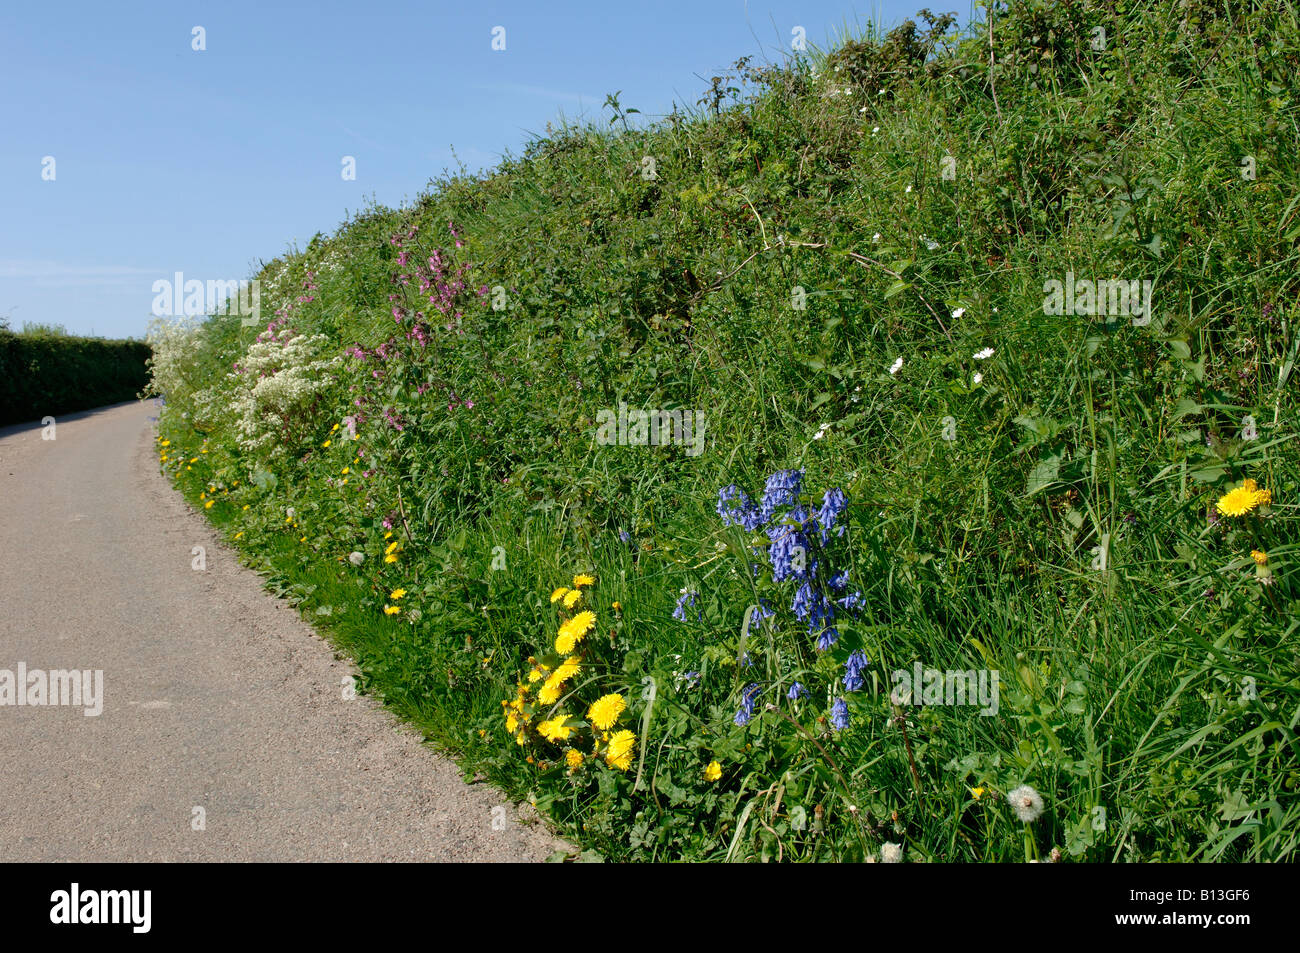 Devon bank on a country road in spring with bluebells campions other devon bank on a country road in spring with bluebells campions other flowers mightylinksfo Choice Image